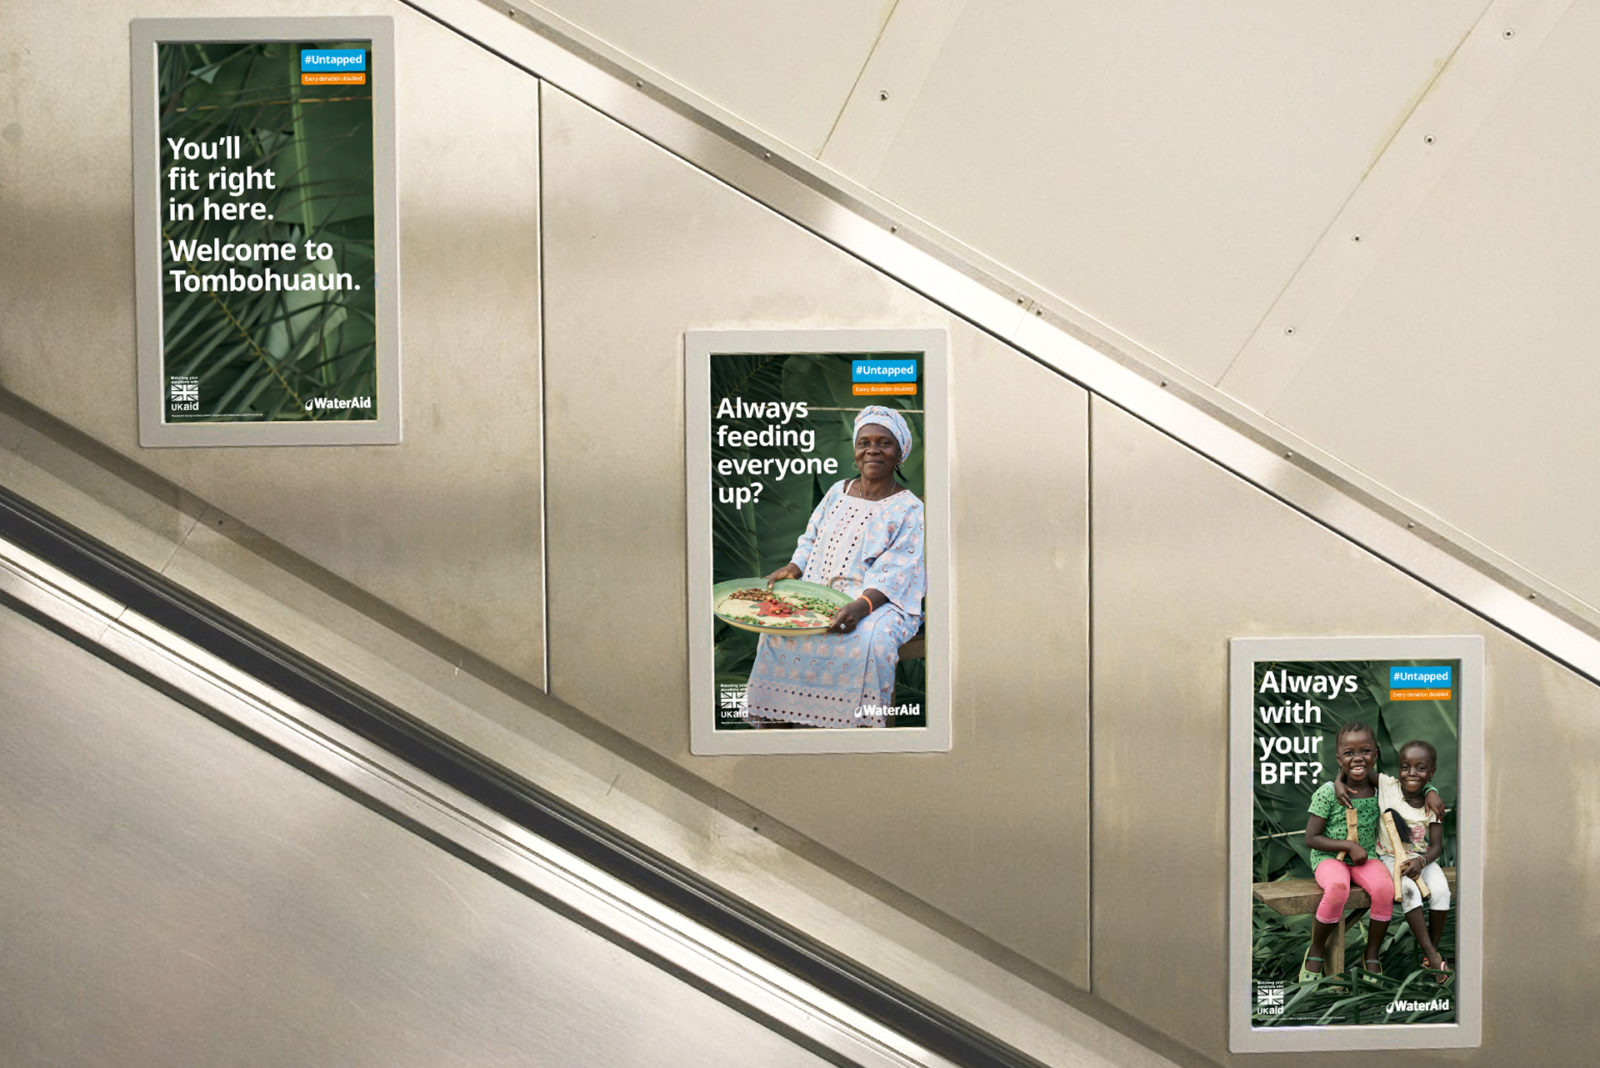 Tube escalator advertising posters of WaterAid Tombohuaun campaign